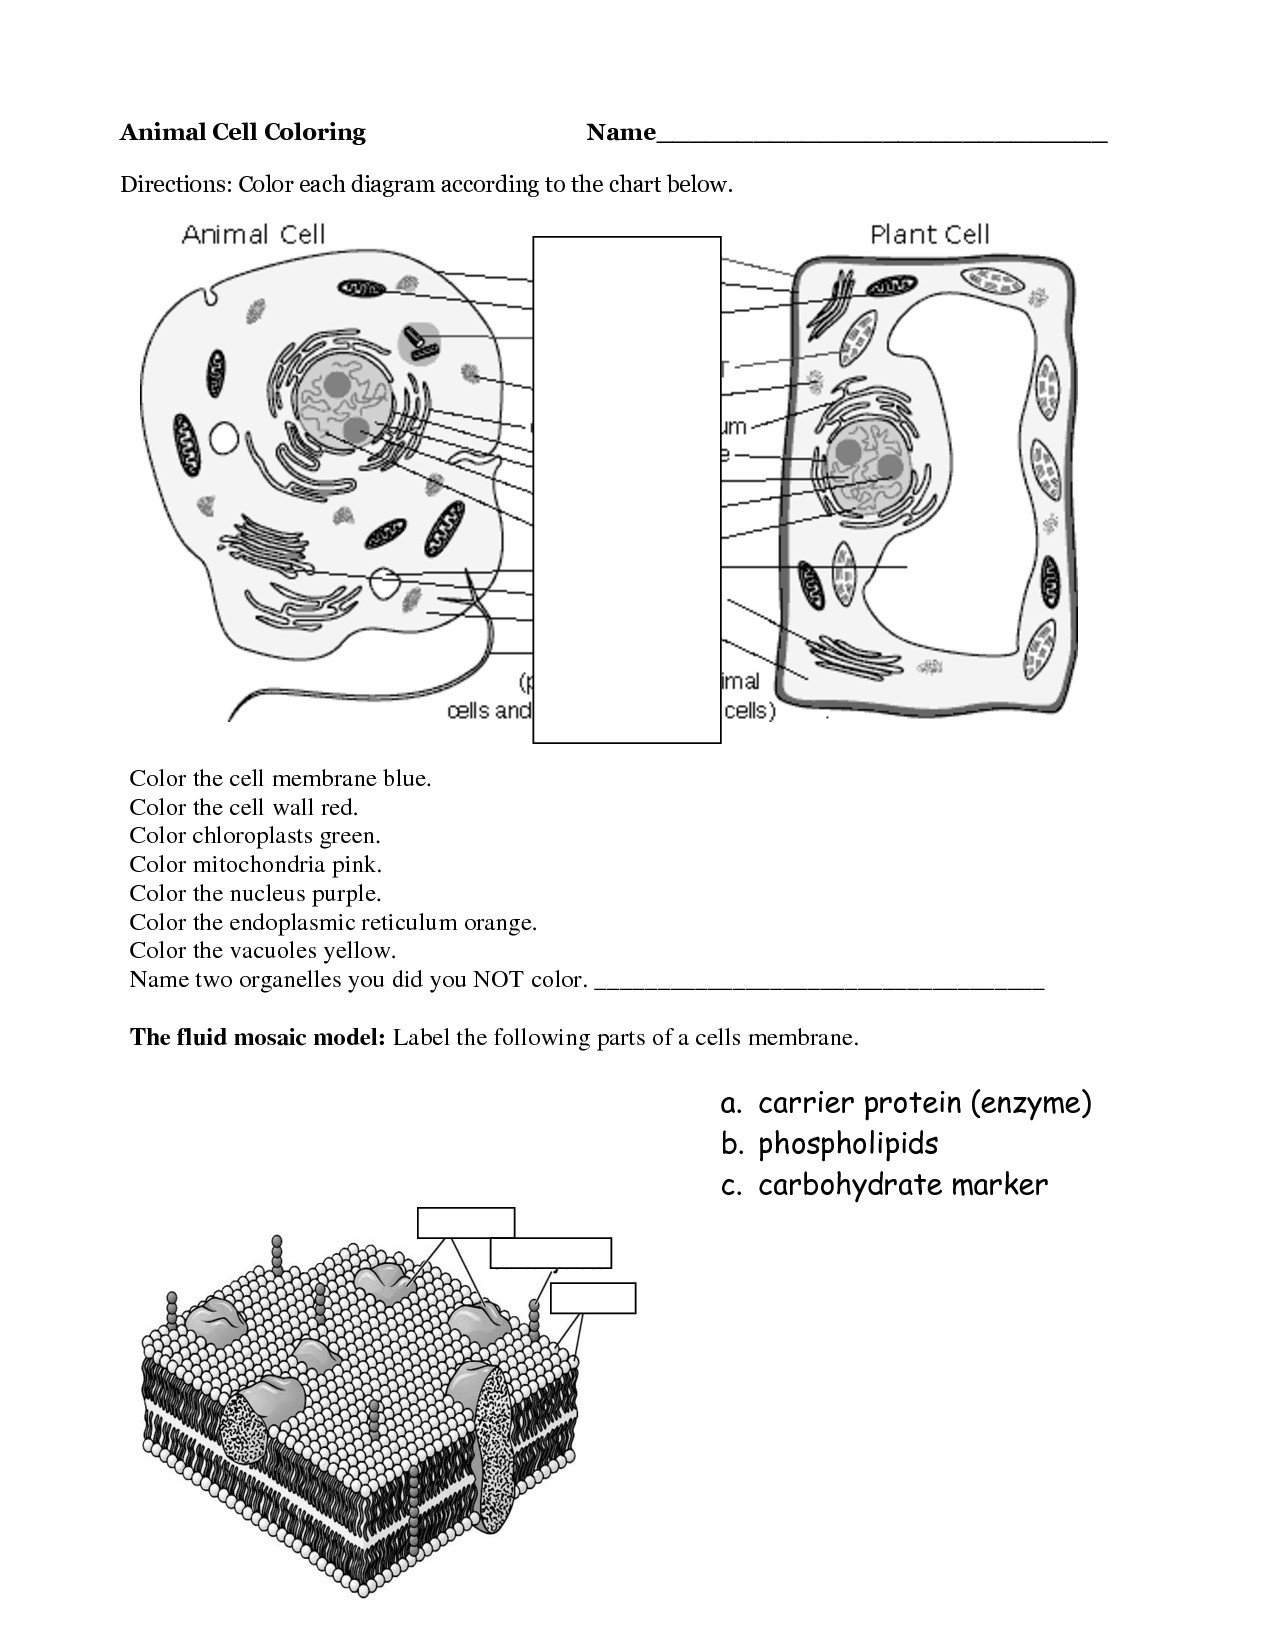 plant cell coloring sheet answer key 46 animal and plant cells